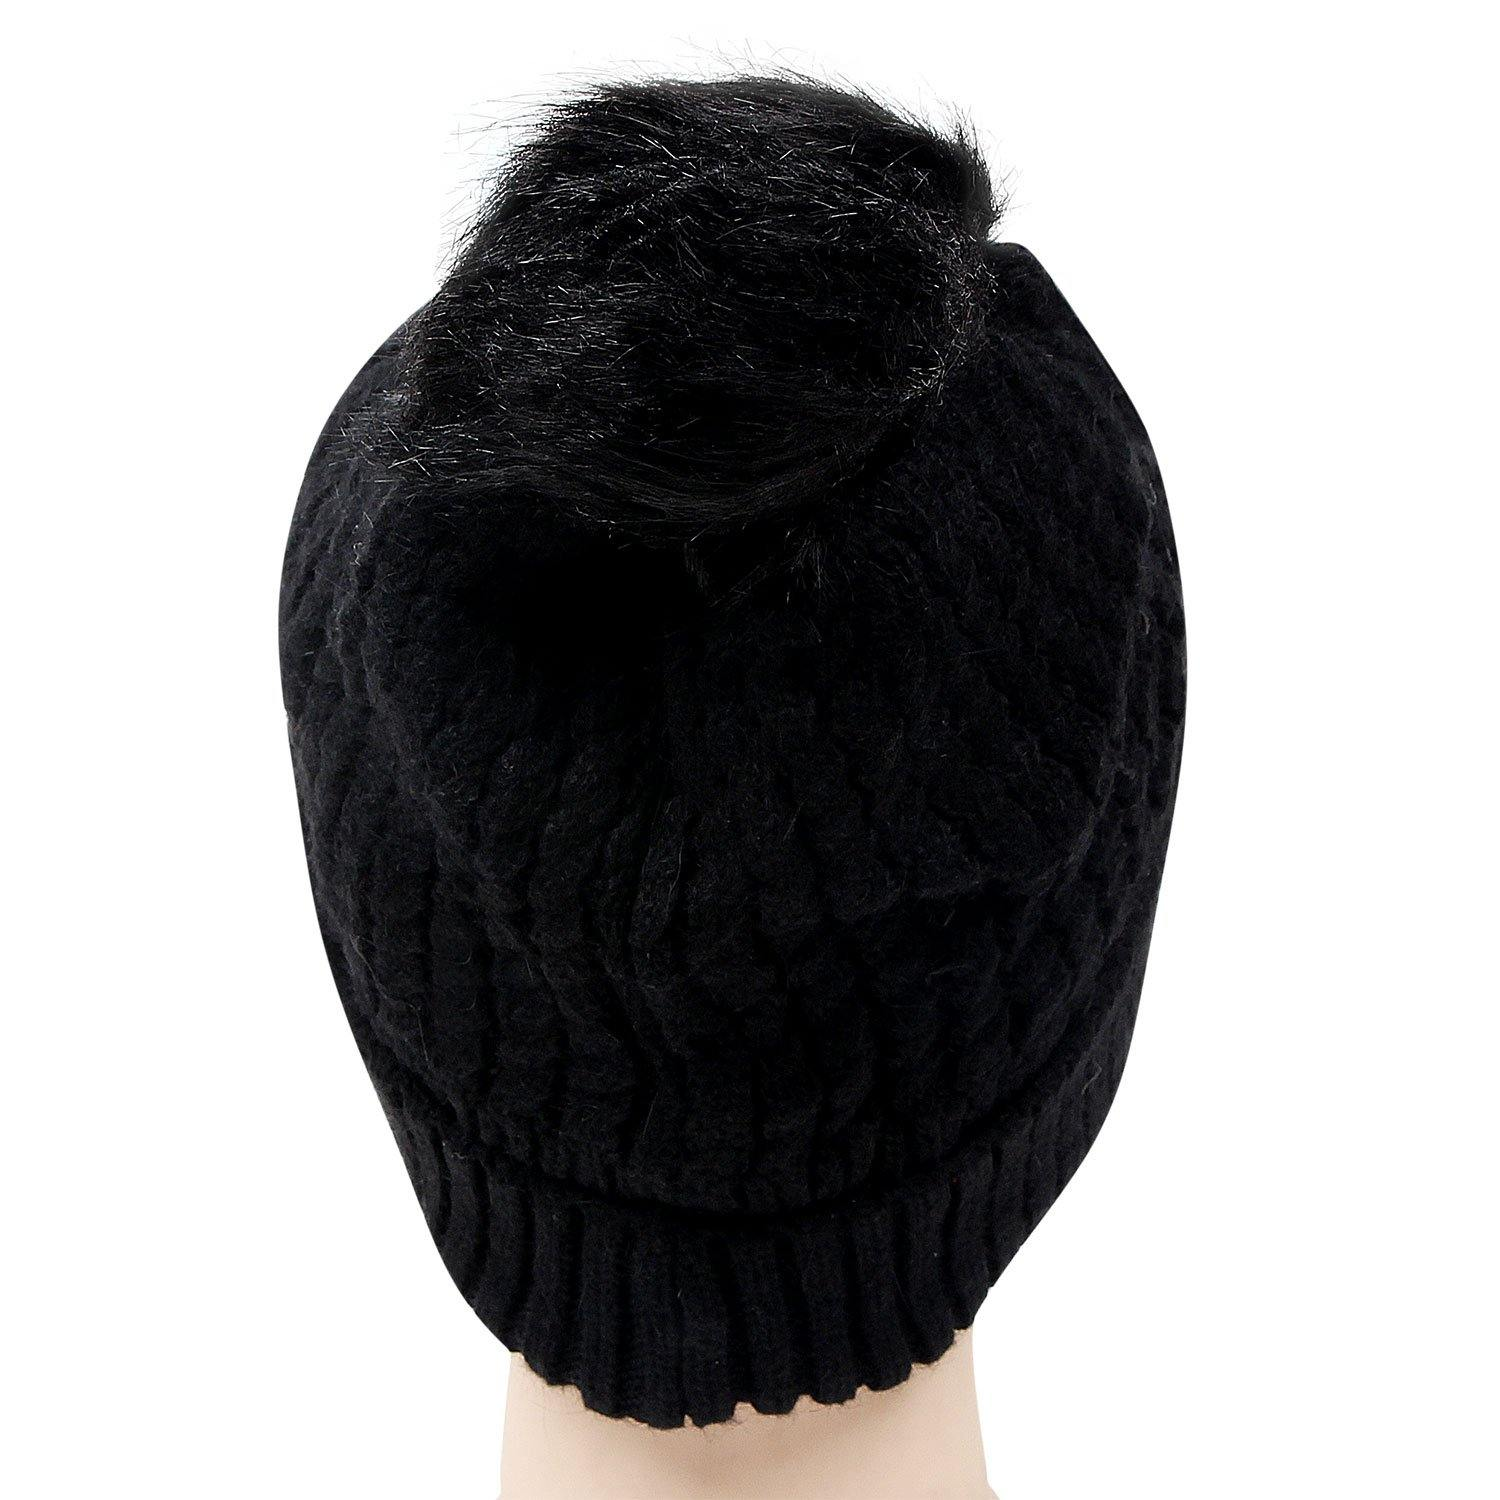 Woolen Cap with Pom Pom For Women - Bonjour Group